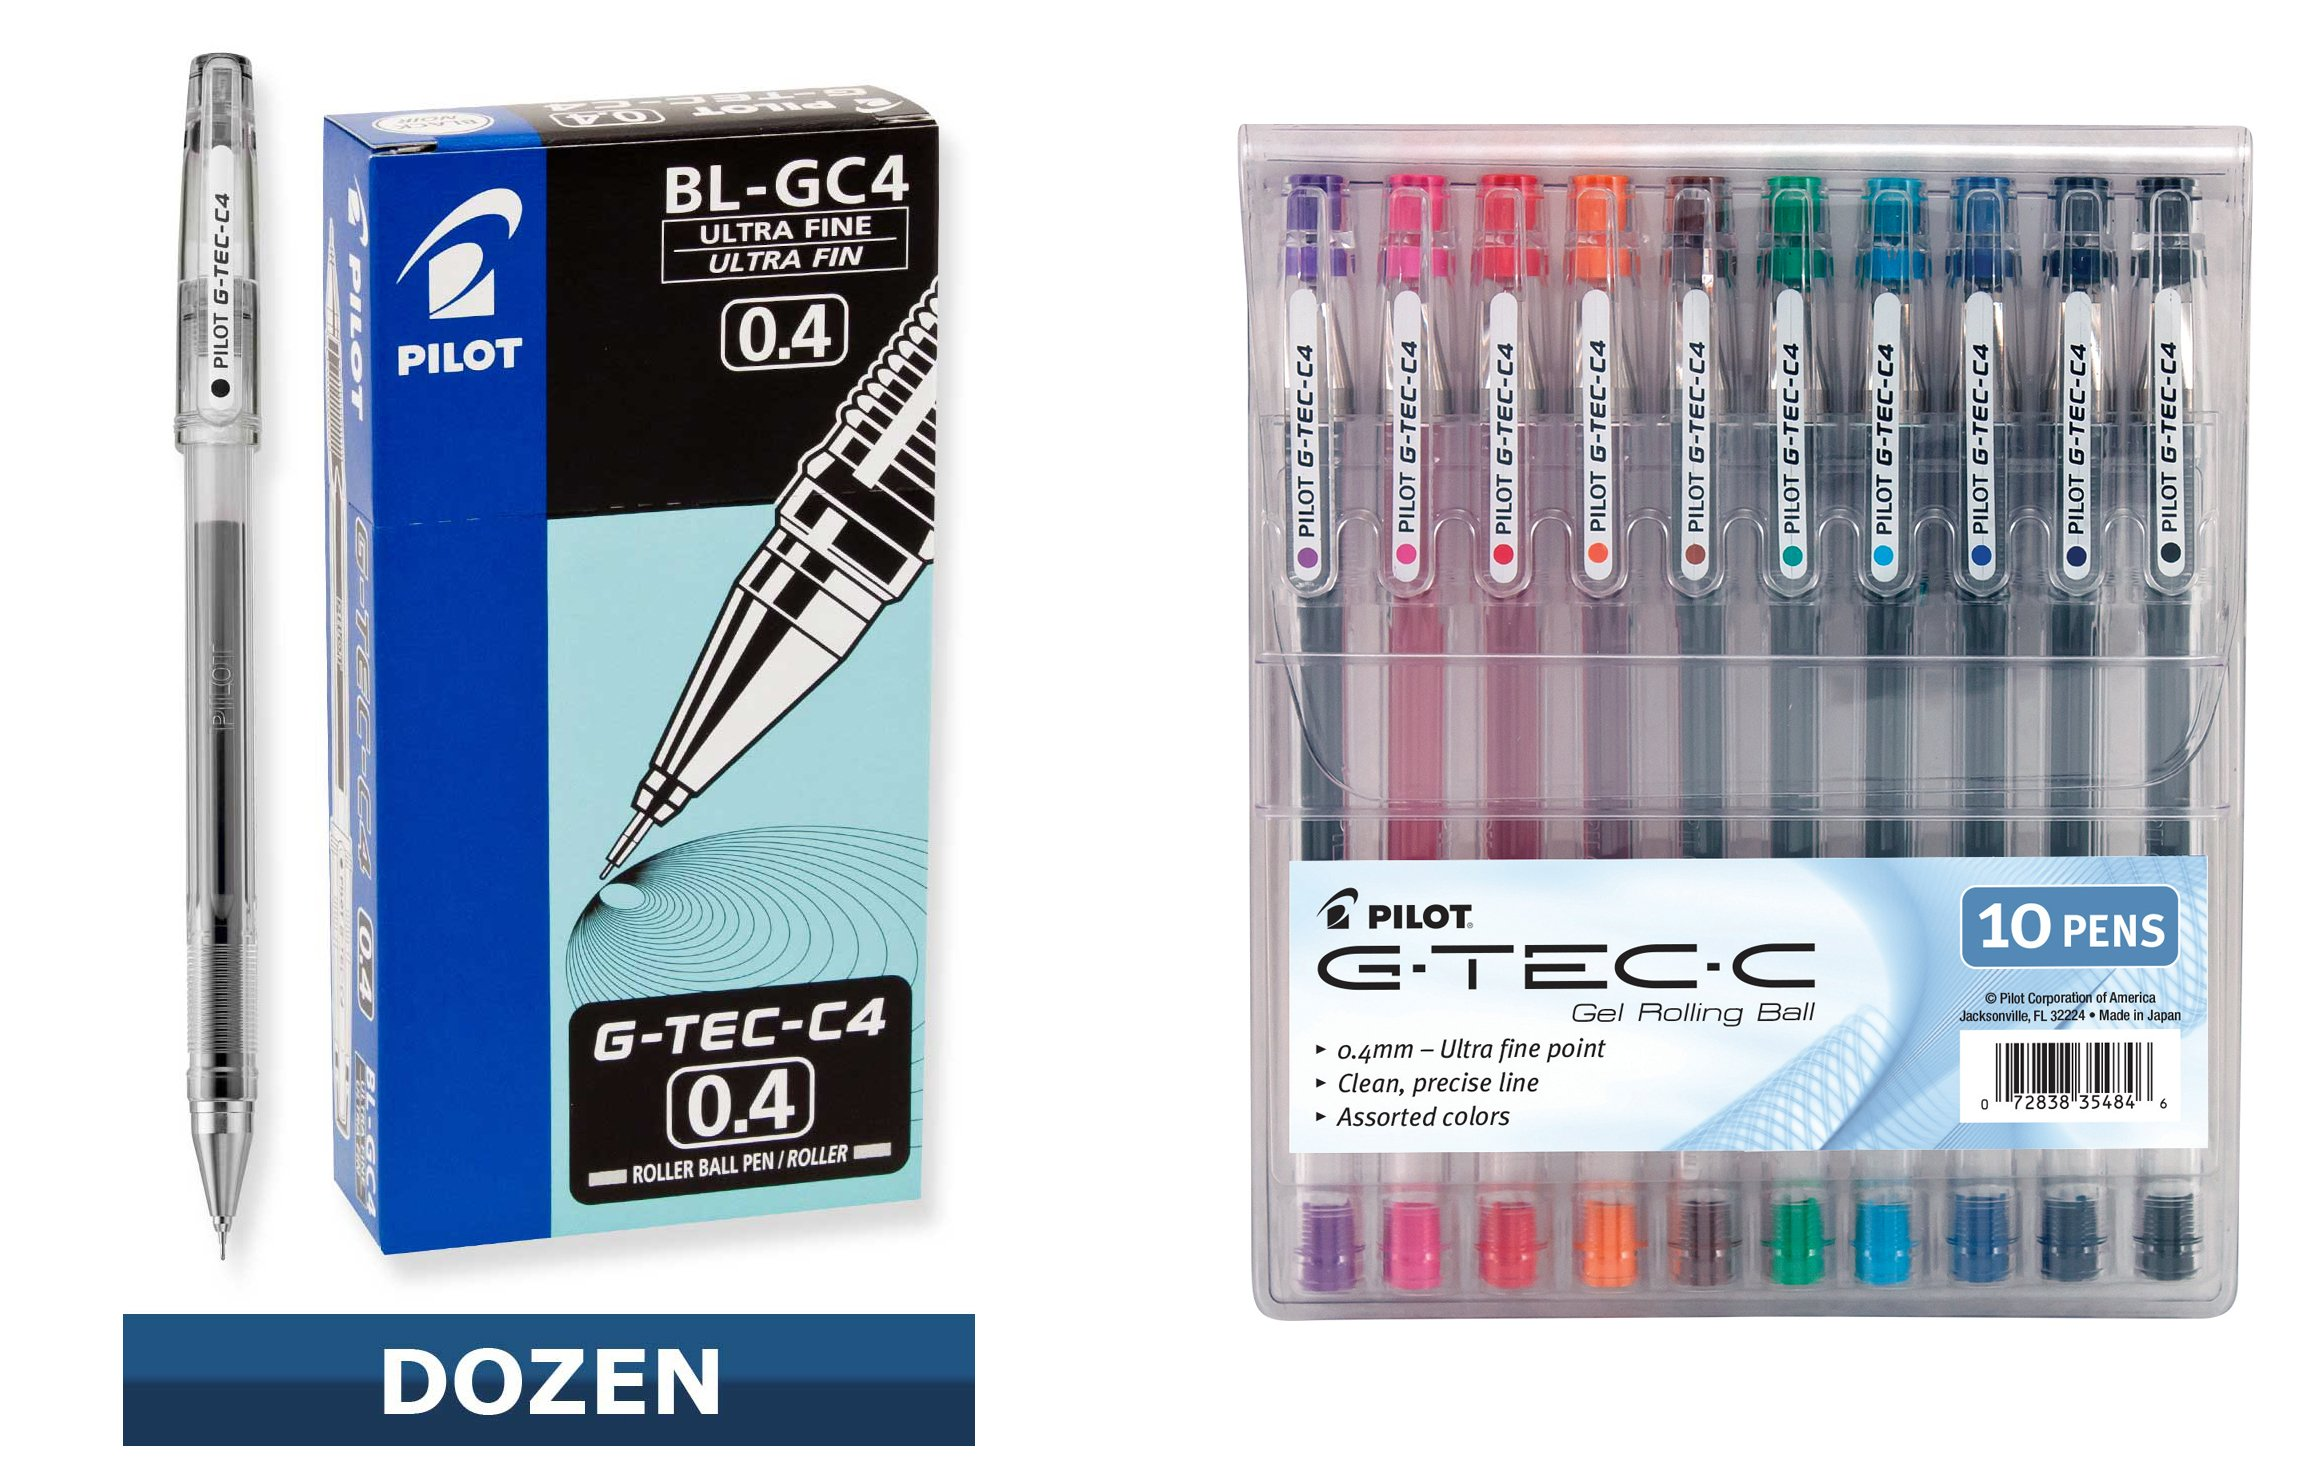 Pilot G-Tec-C Ultra Fine 0.4mm Rollerball Pens Bundle, 1 Dozen Black + 10 Assorted Colors by Pilot (Image #1)